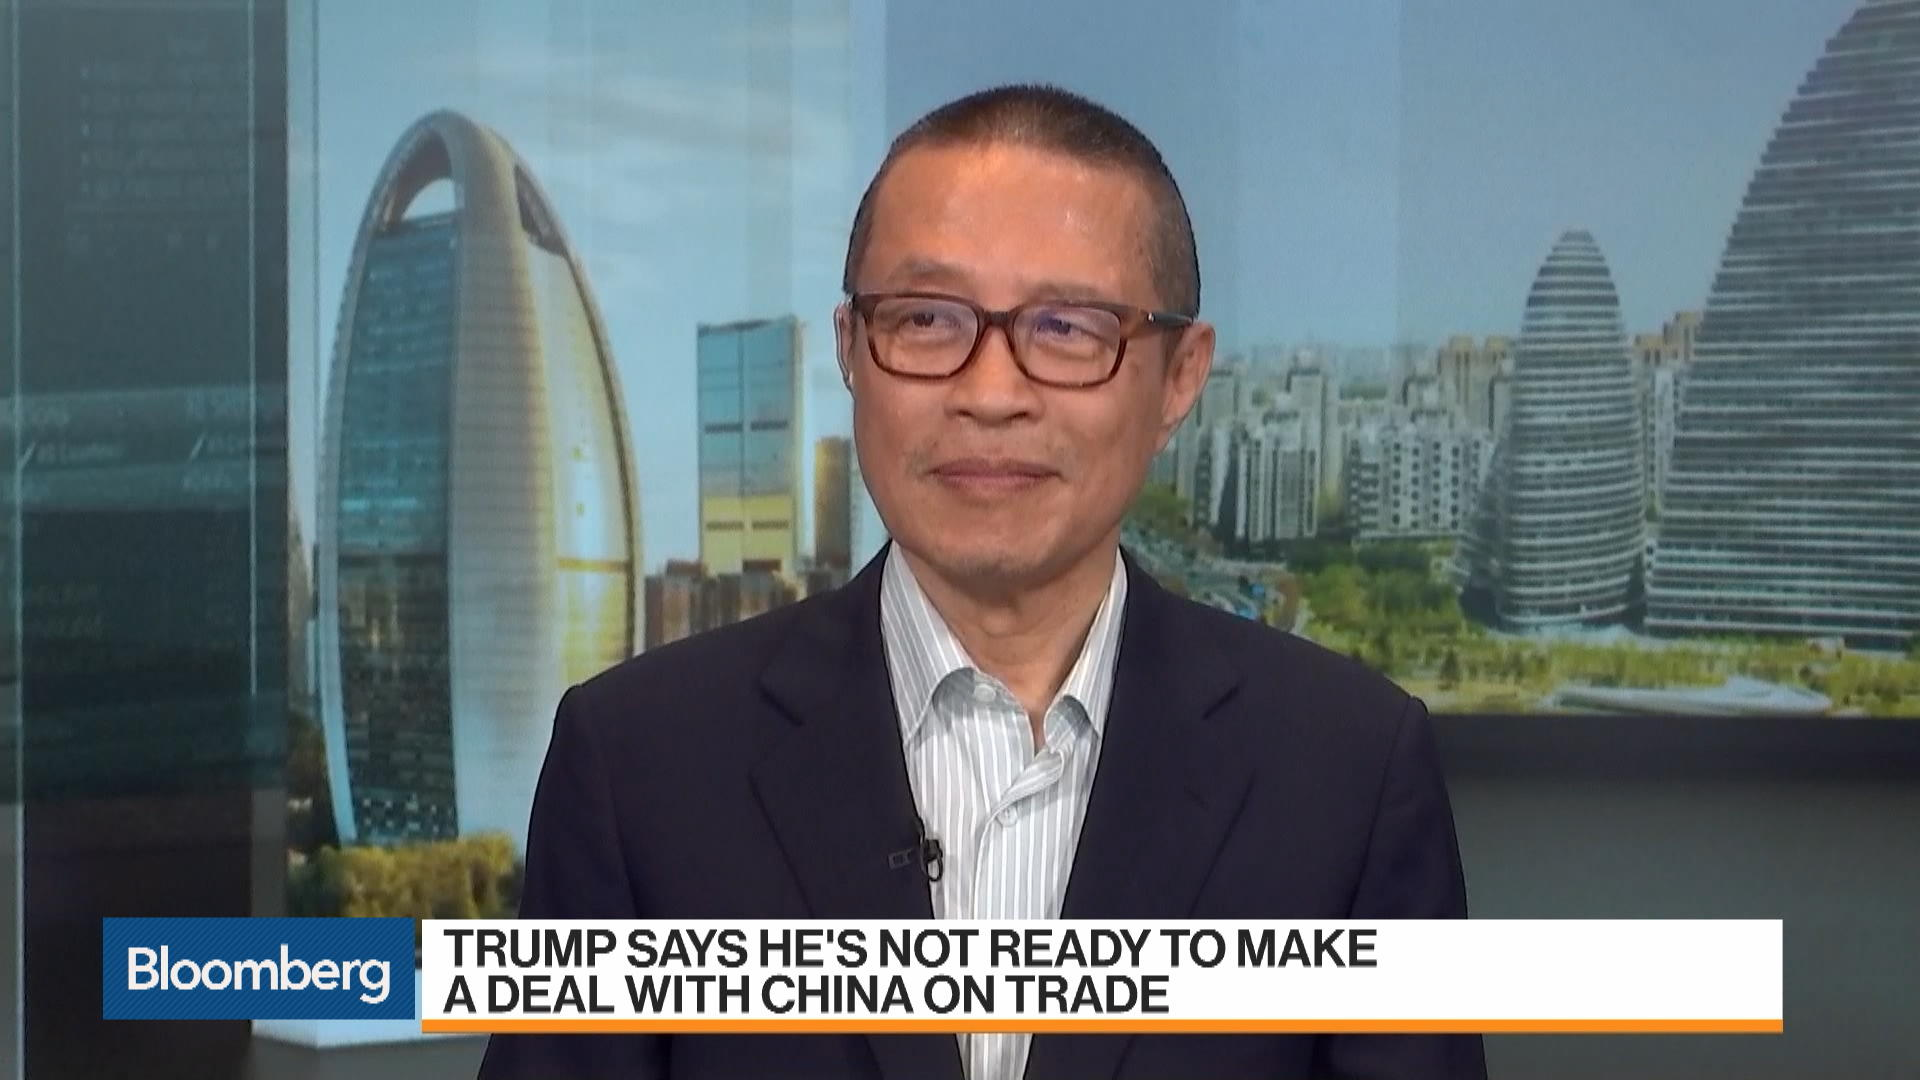 Hao Capital Founder Charles Liu on U.S.-China Trade War, Huawei, Negotiations